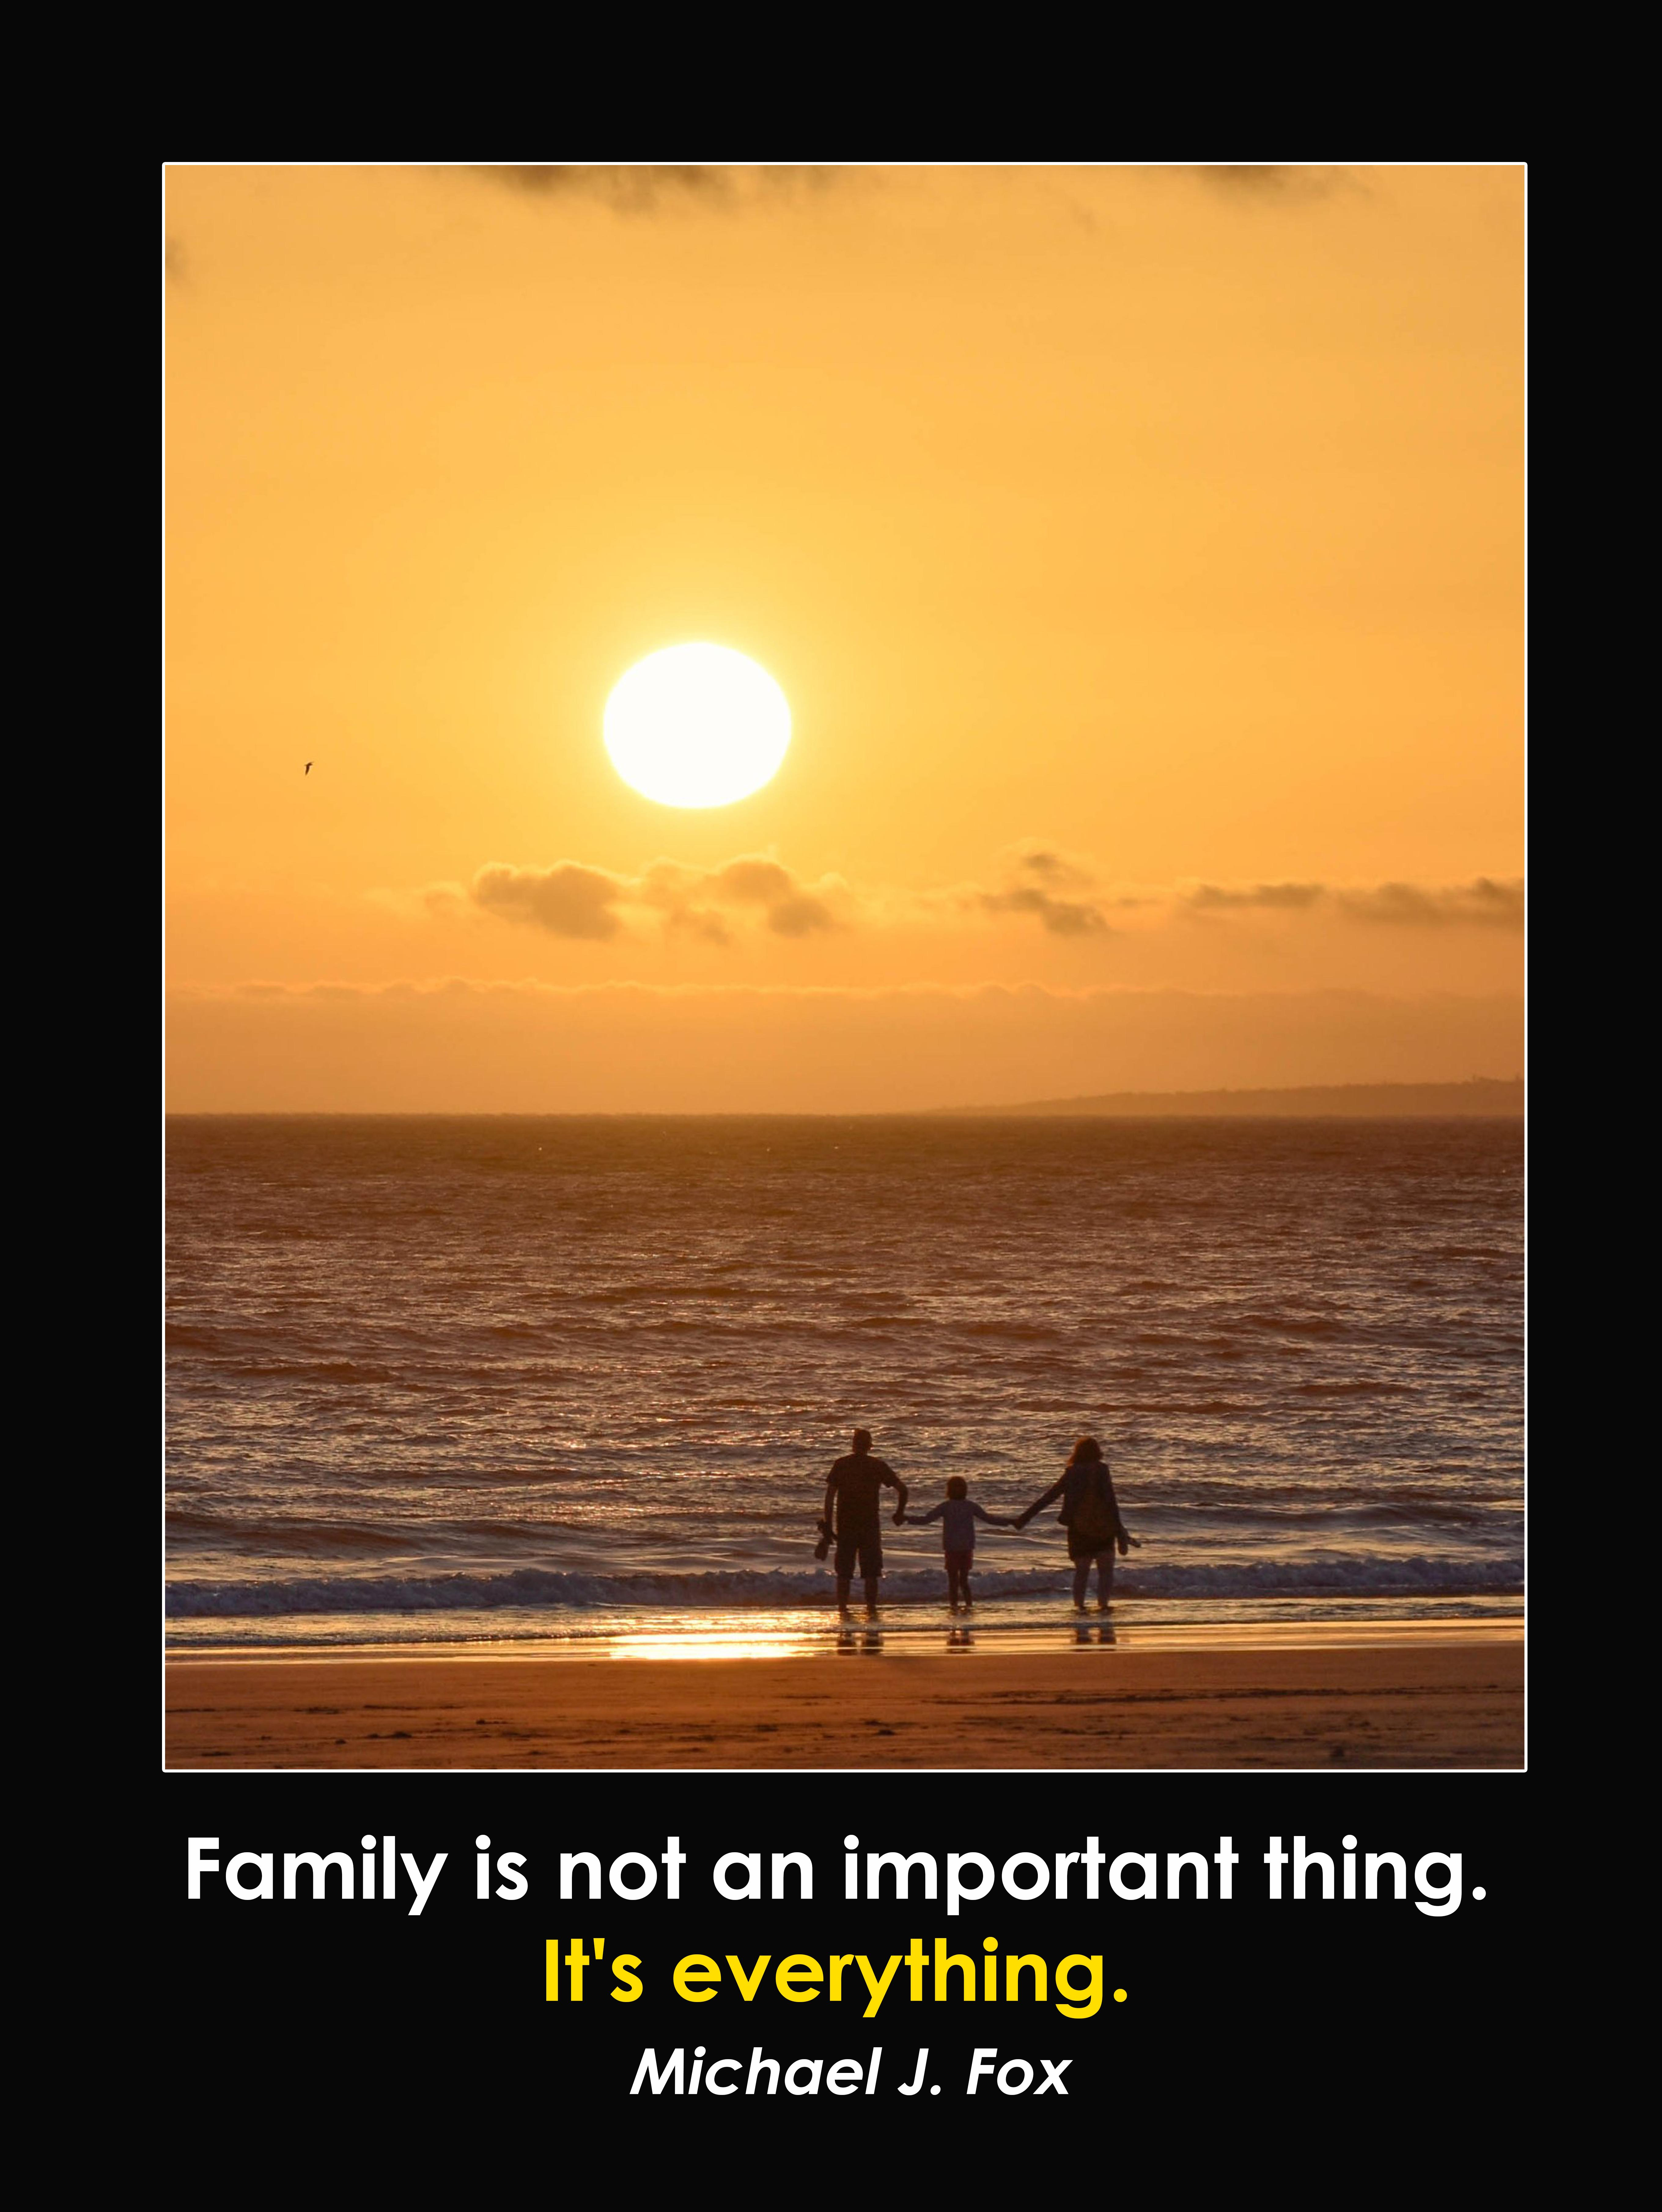 Family is not an important thing it's everything – Michael J. Fox (5437×7237)